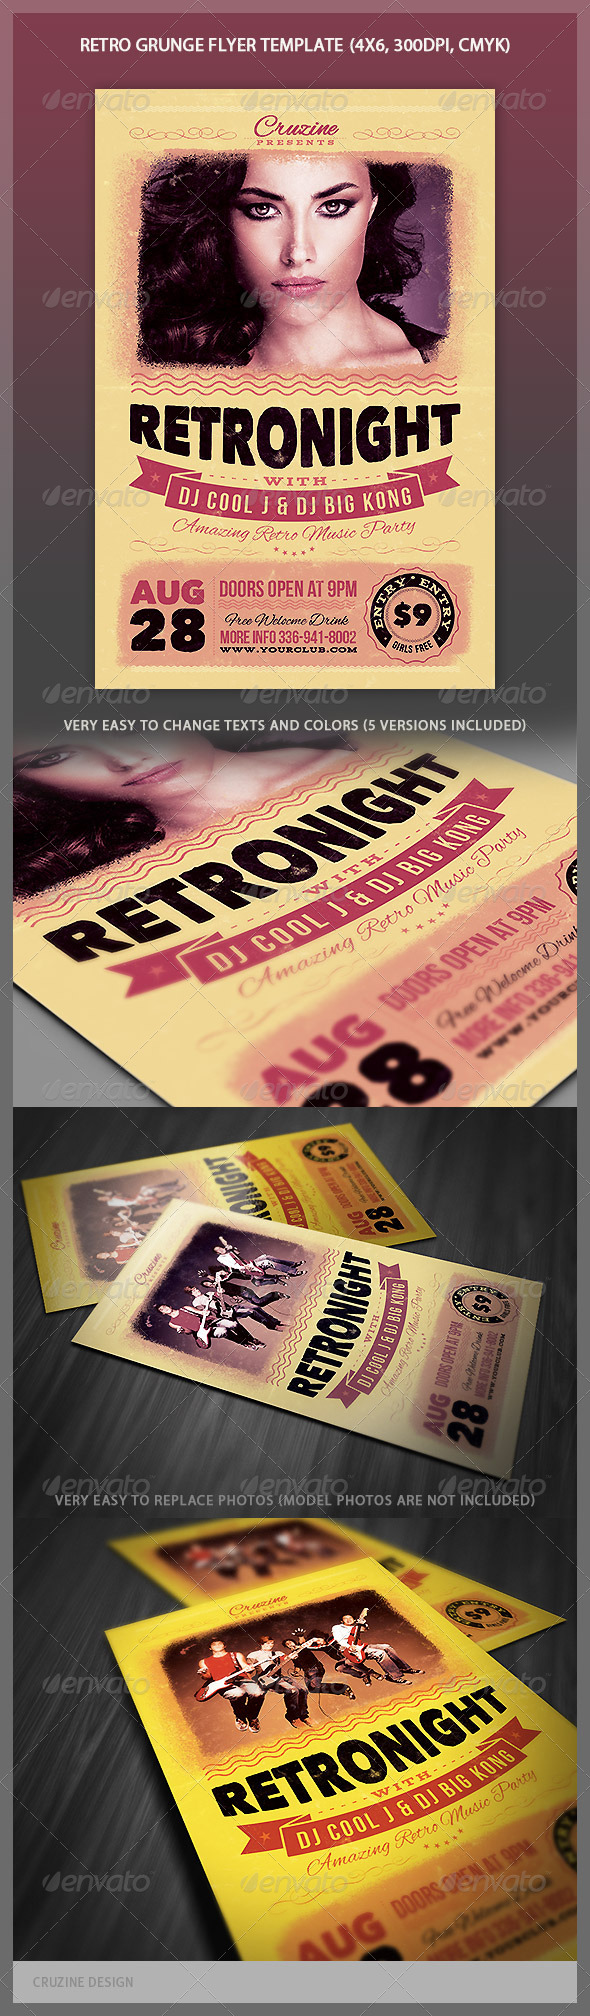 GraphicRiver Retro Grunge Flyer 4855897